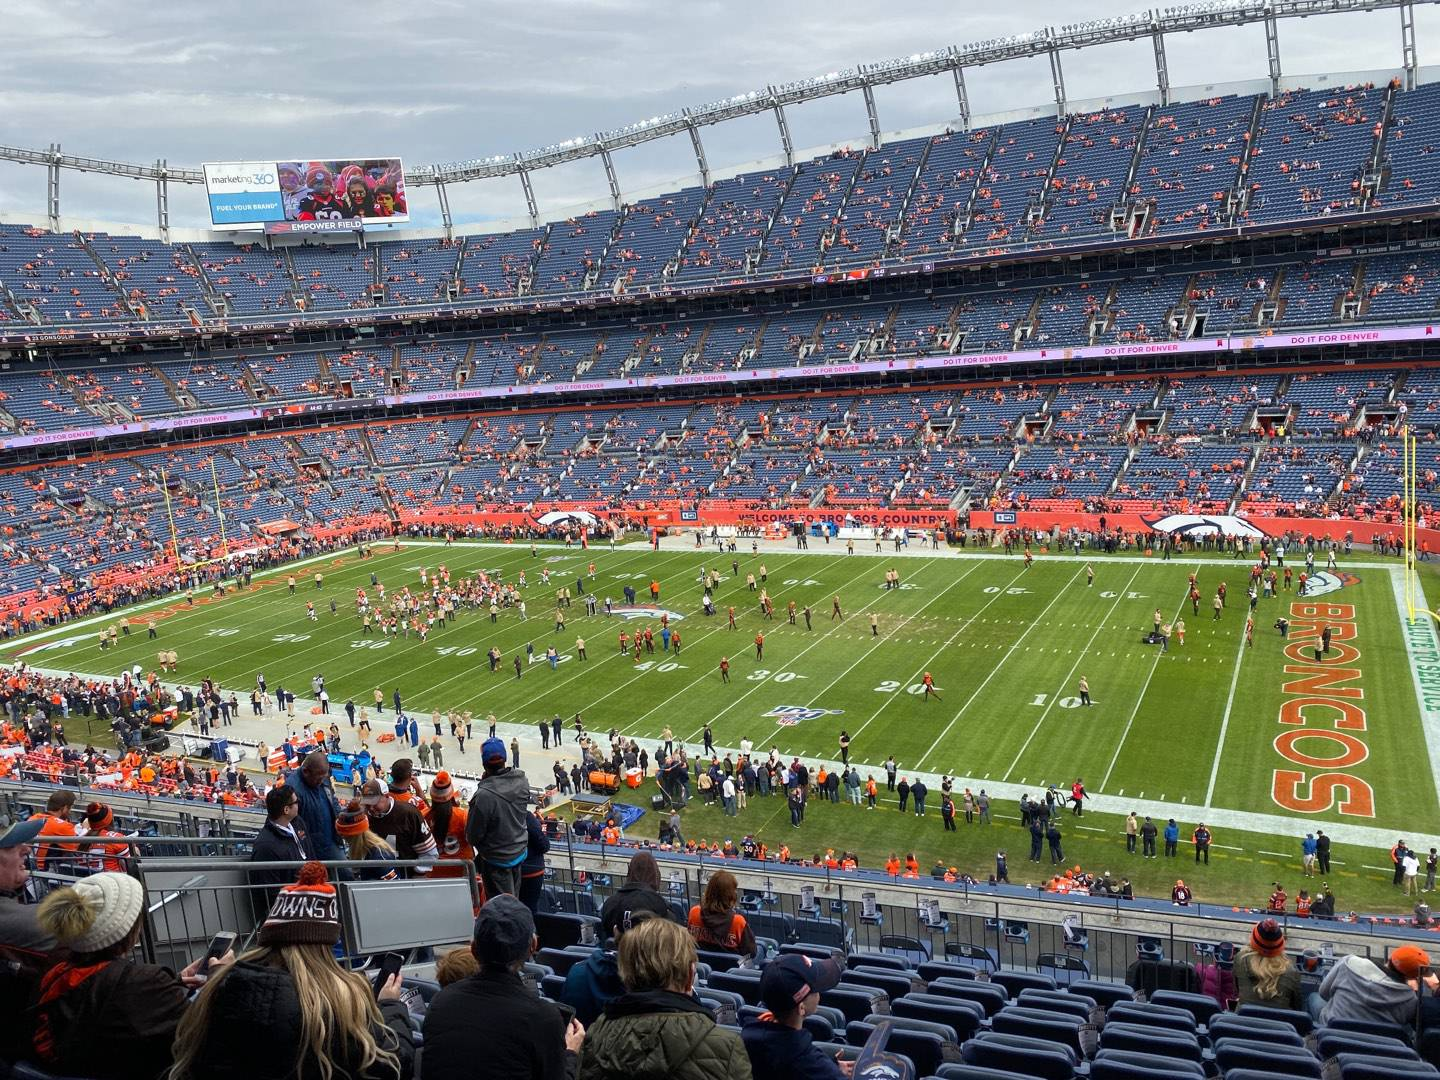 Empower Field at Mile High Stadium Section 304 Rangée 13 Siège 5